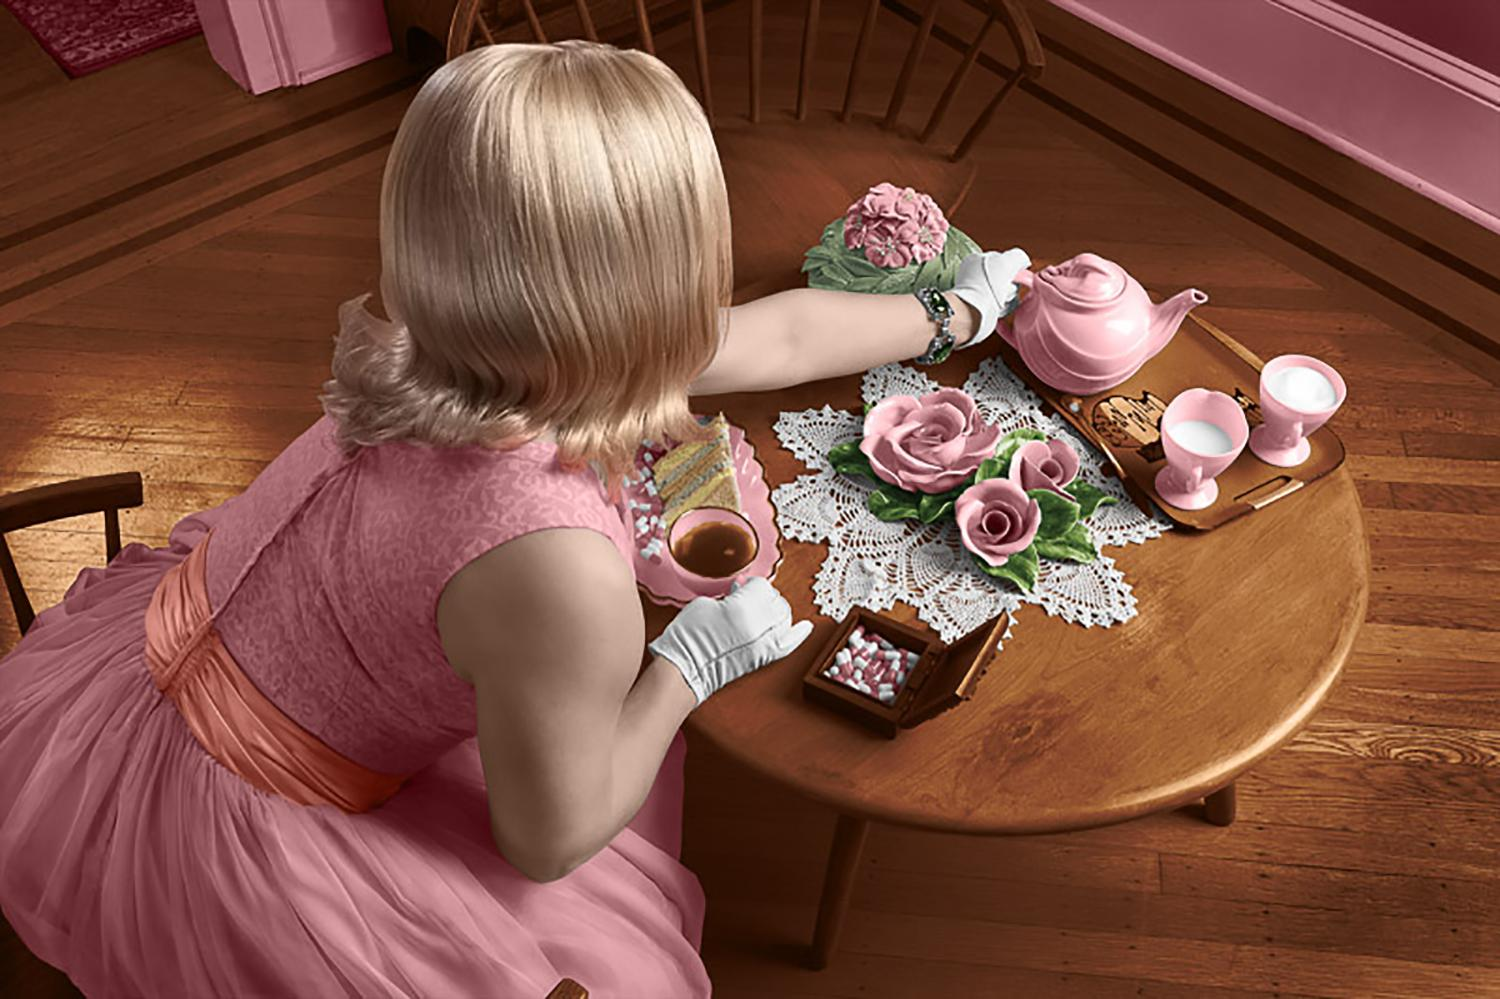 Tea and Comfort: Contemporary Figurative Photograph of 1950's Housewife